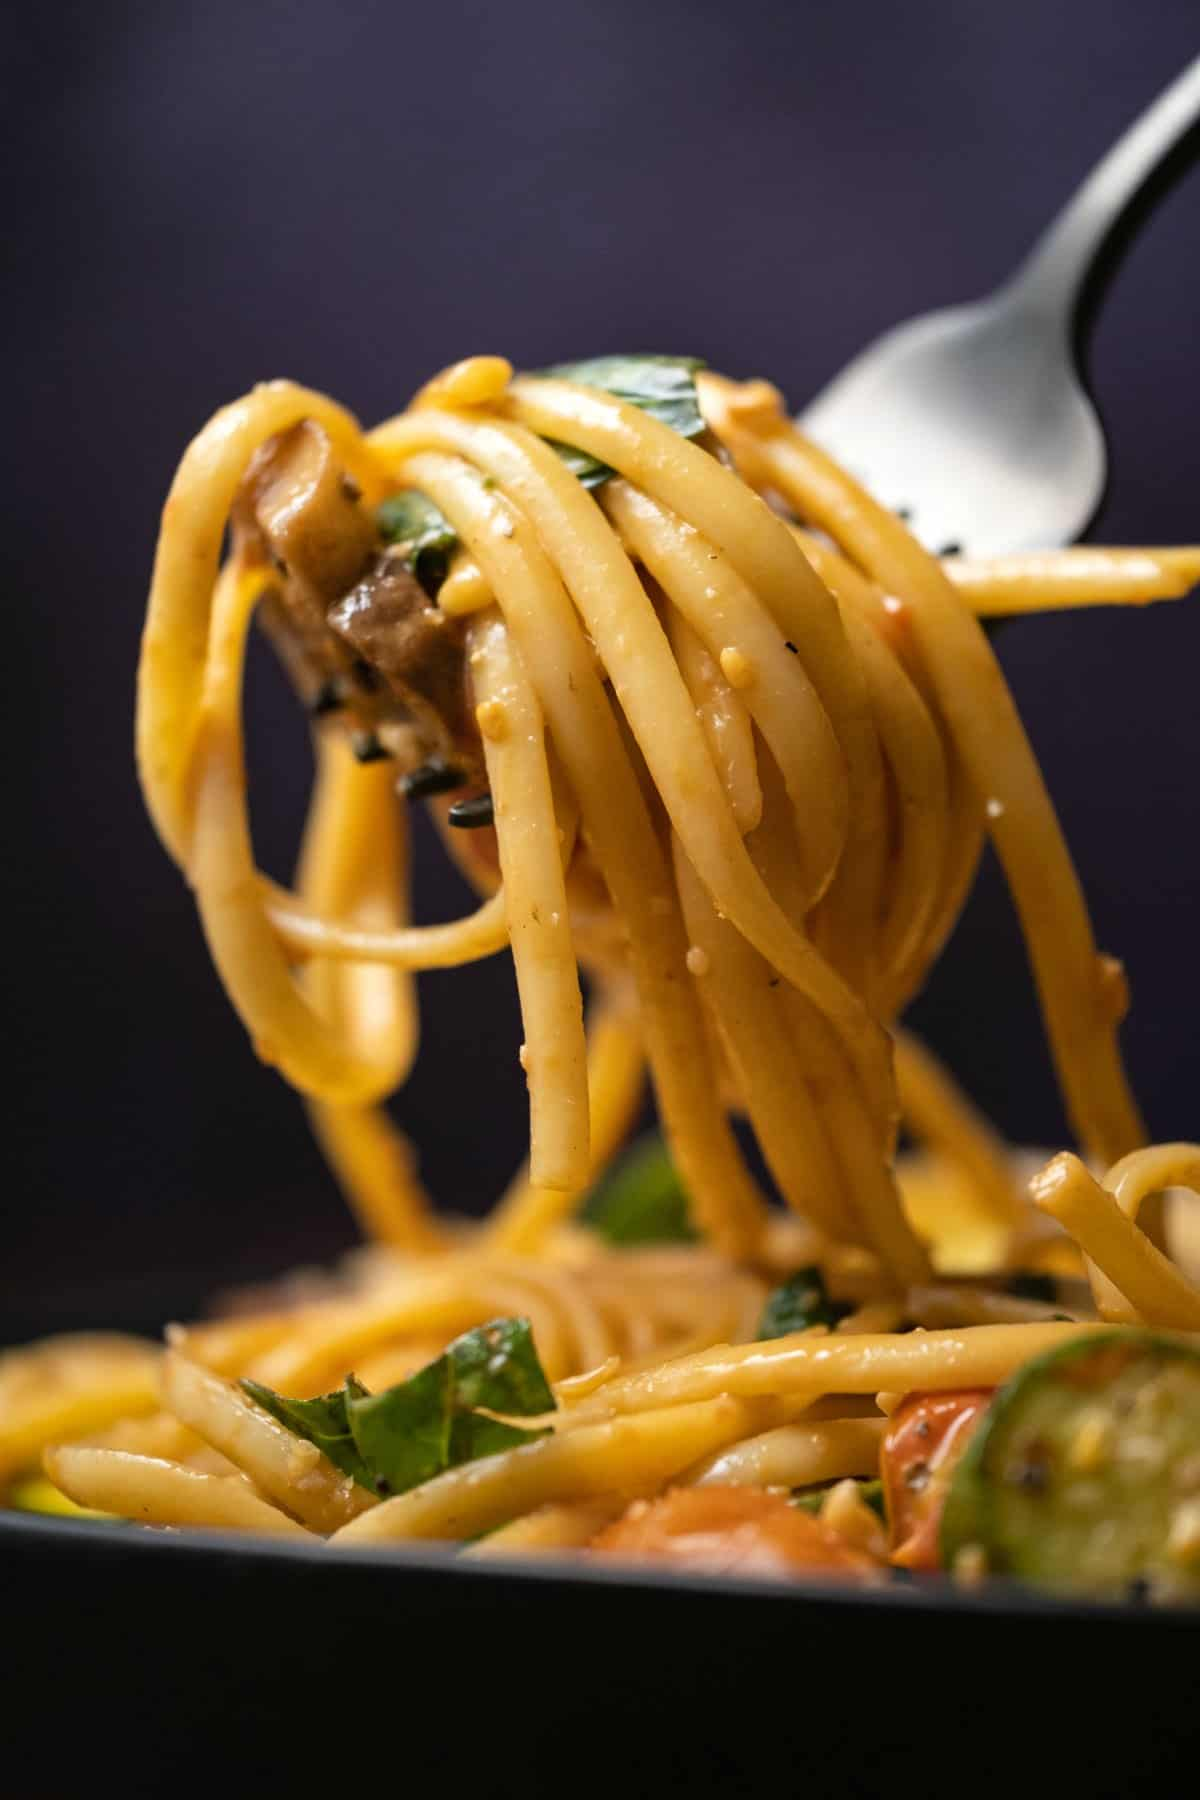 Linguine and vegetables on a fork.